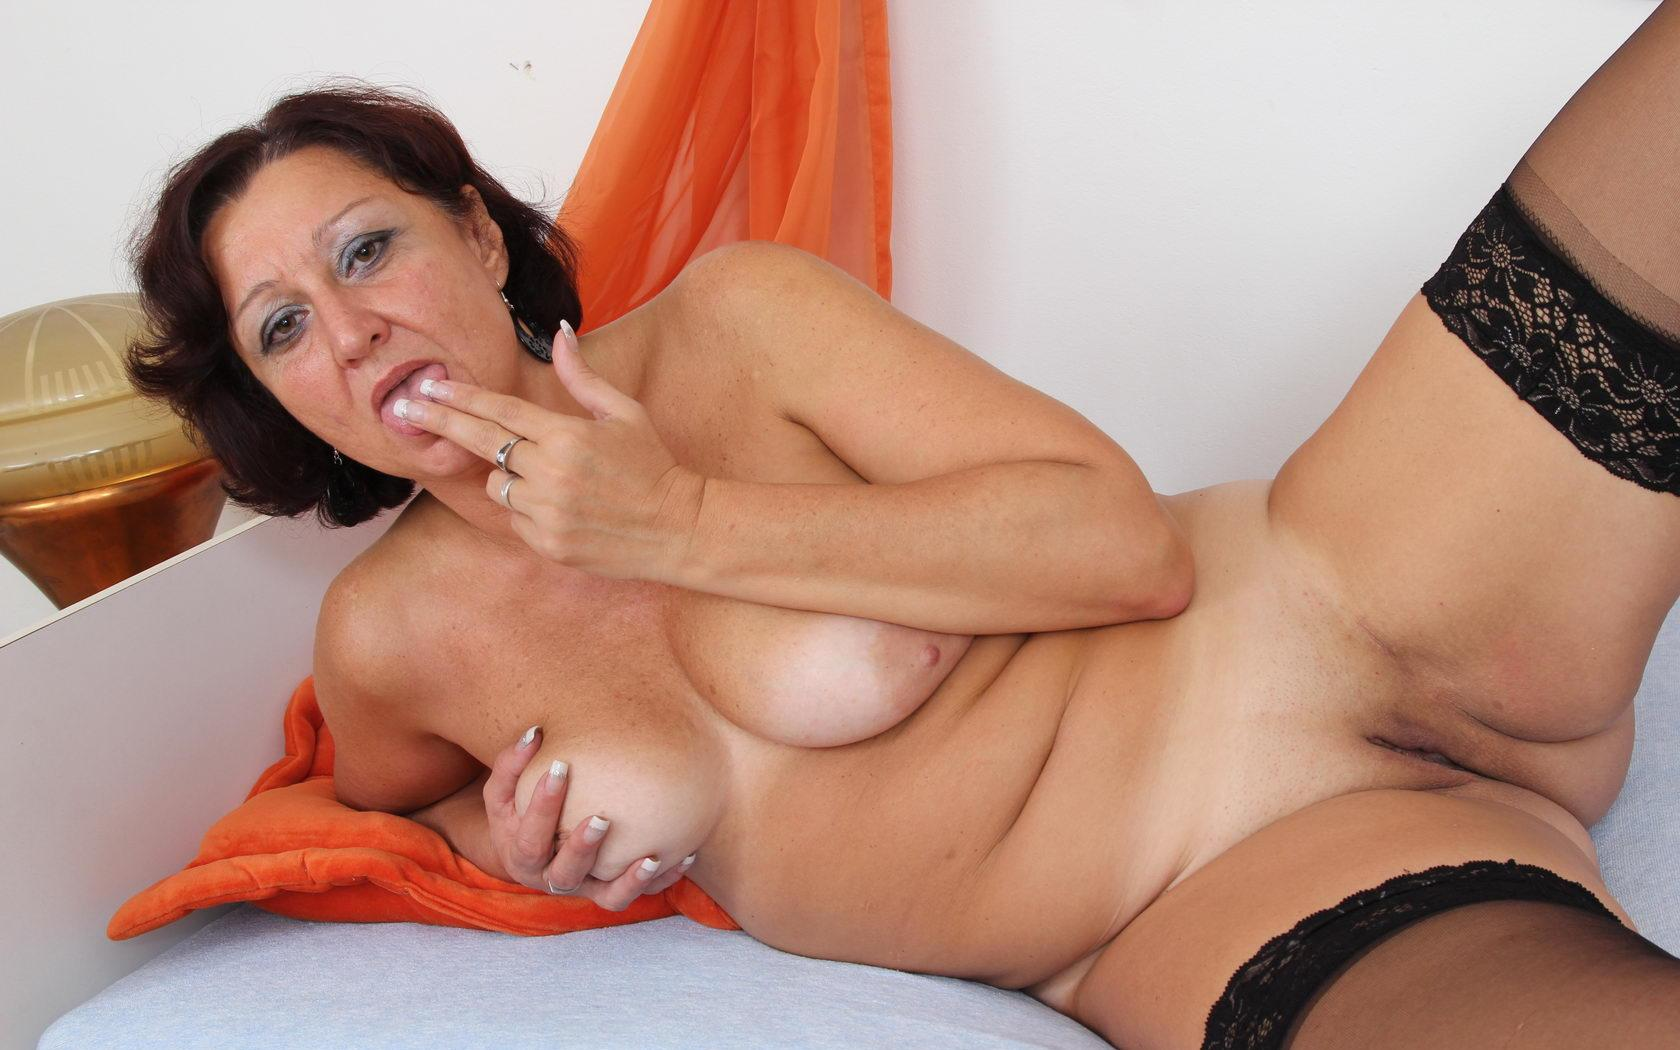 Nadia ,a  anal addicted granny who Is addicted to have undisturbed tittyfuck